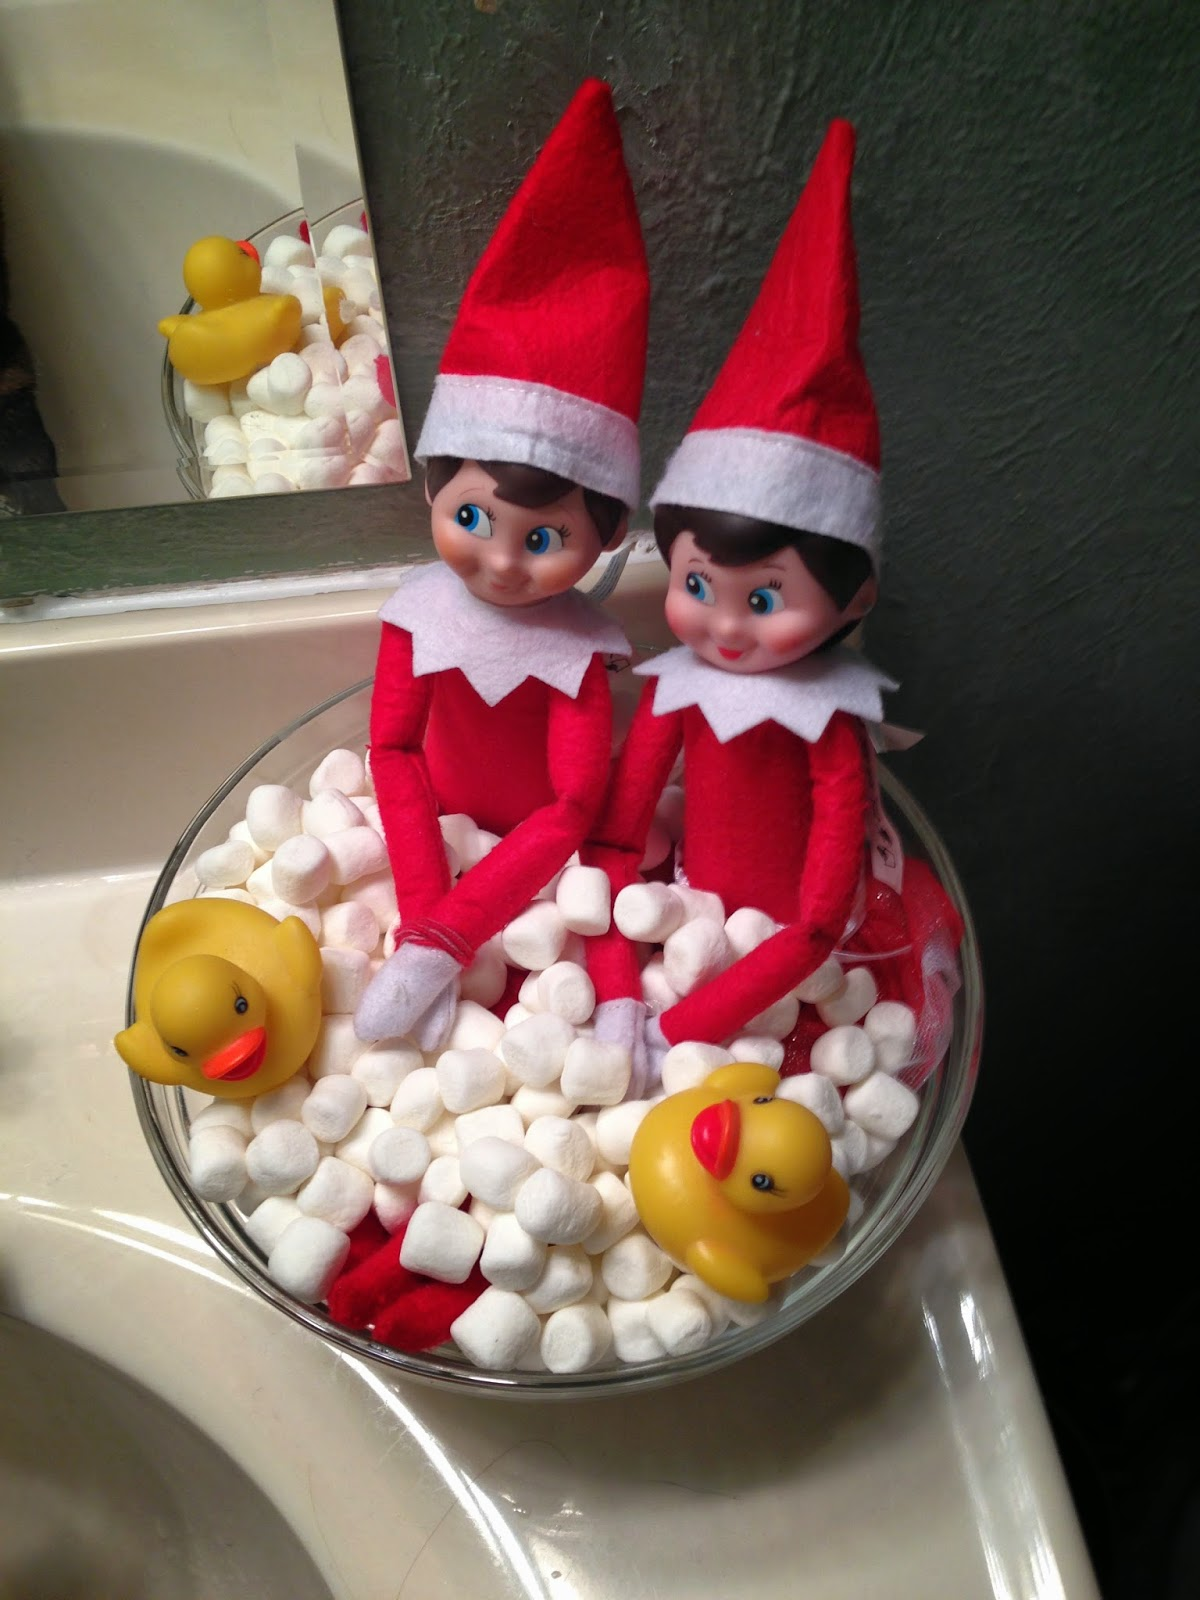 Elf on the shelf fun with 2 elves building our story for Elf on the shelf bathroom ideas